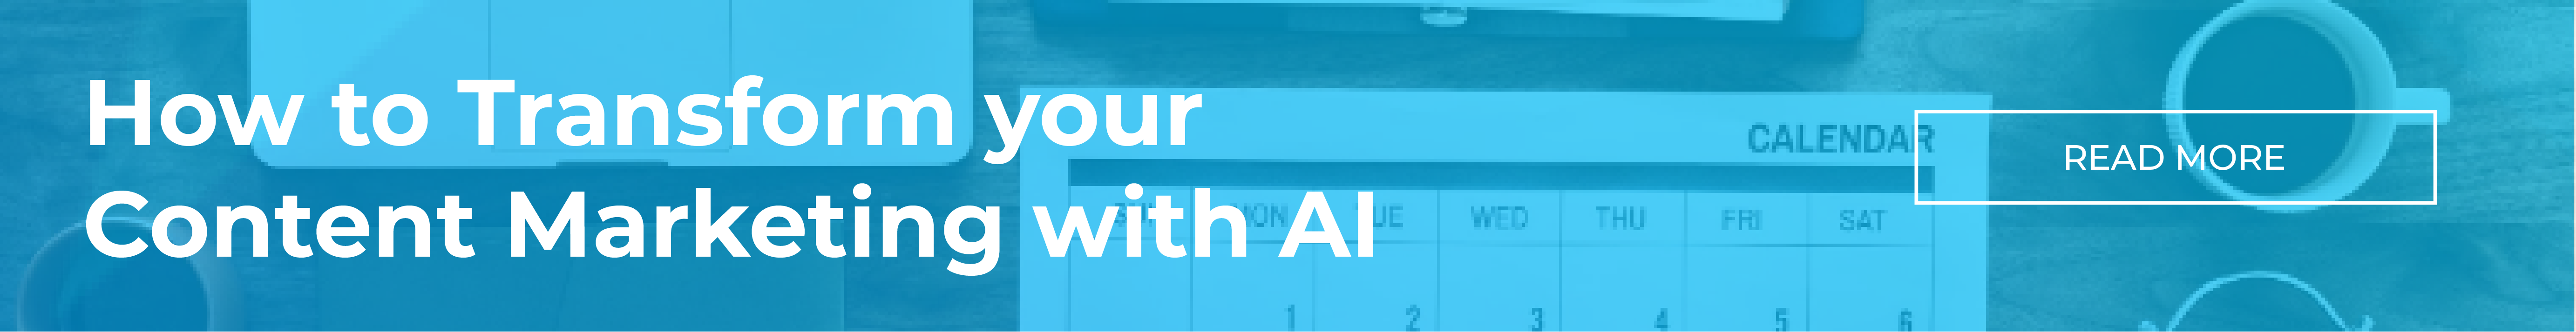 How to transform your content marketing with AI banner